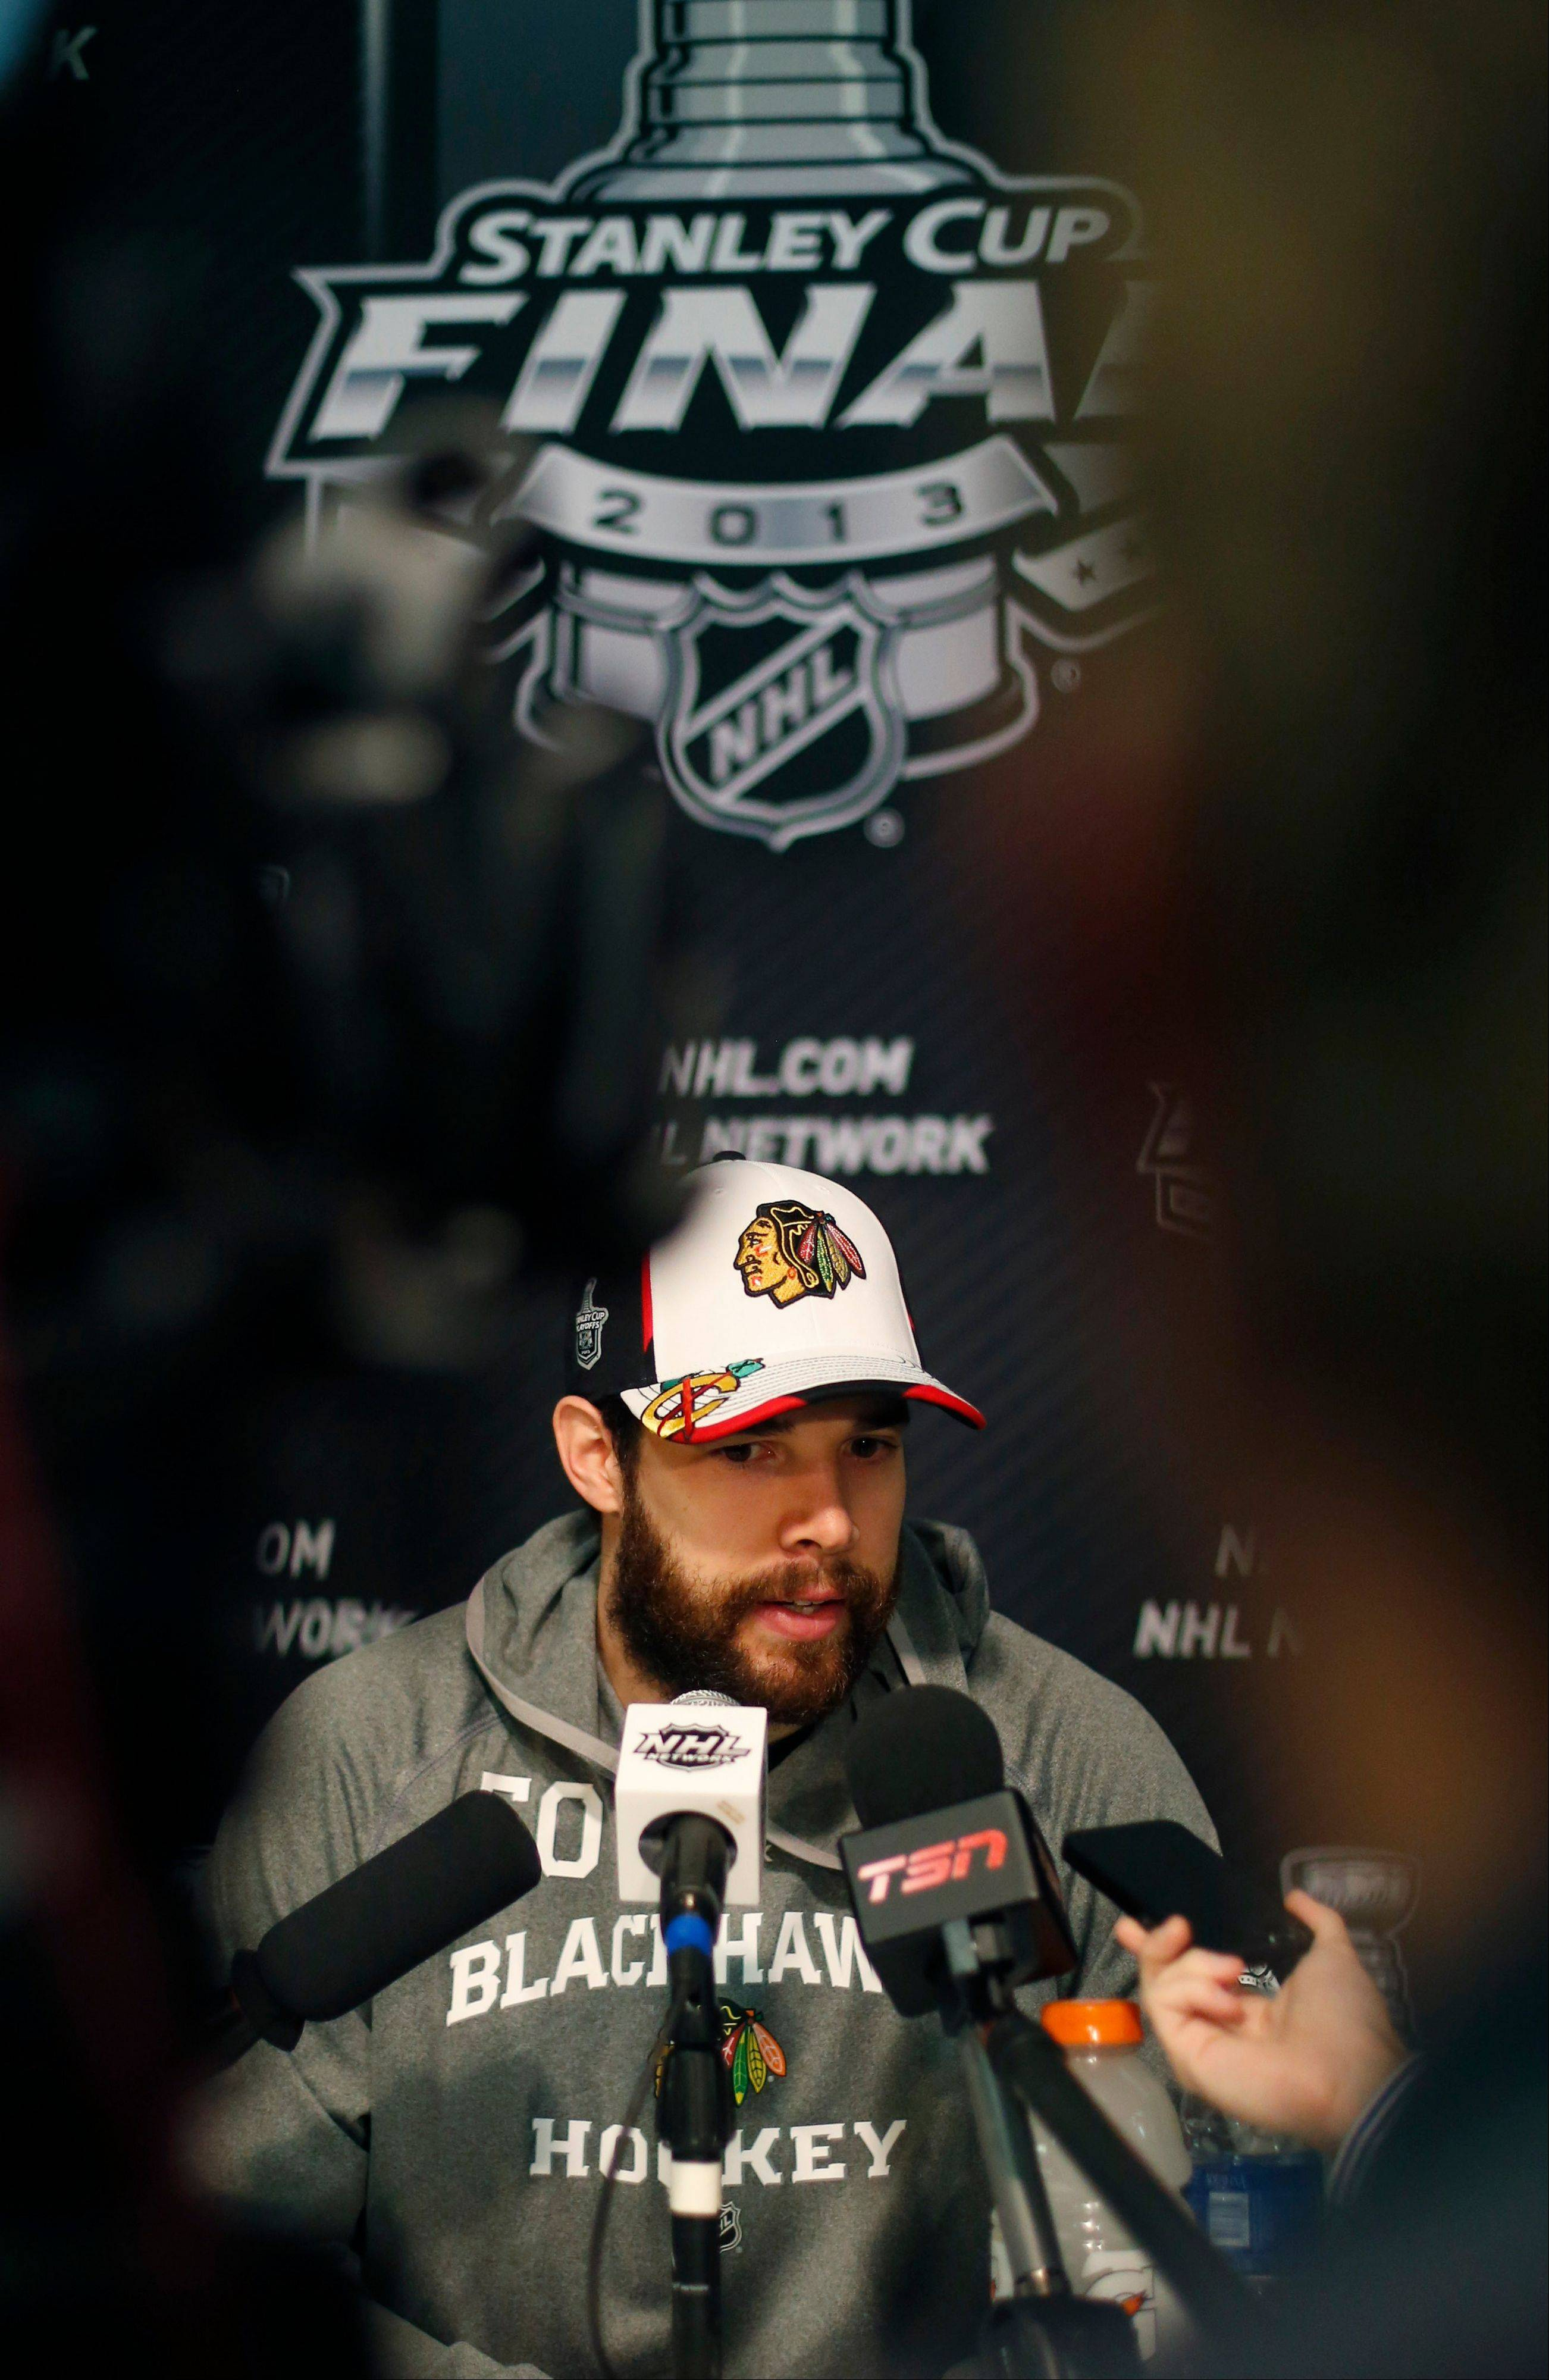 Chicago Blackhawks goalie Corey Crawford responds to a question during a news conference for the Stanley Cup Final hockey series against the Boston Bruins Tuesday.